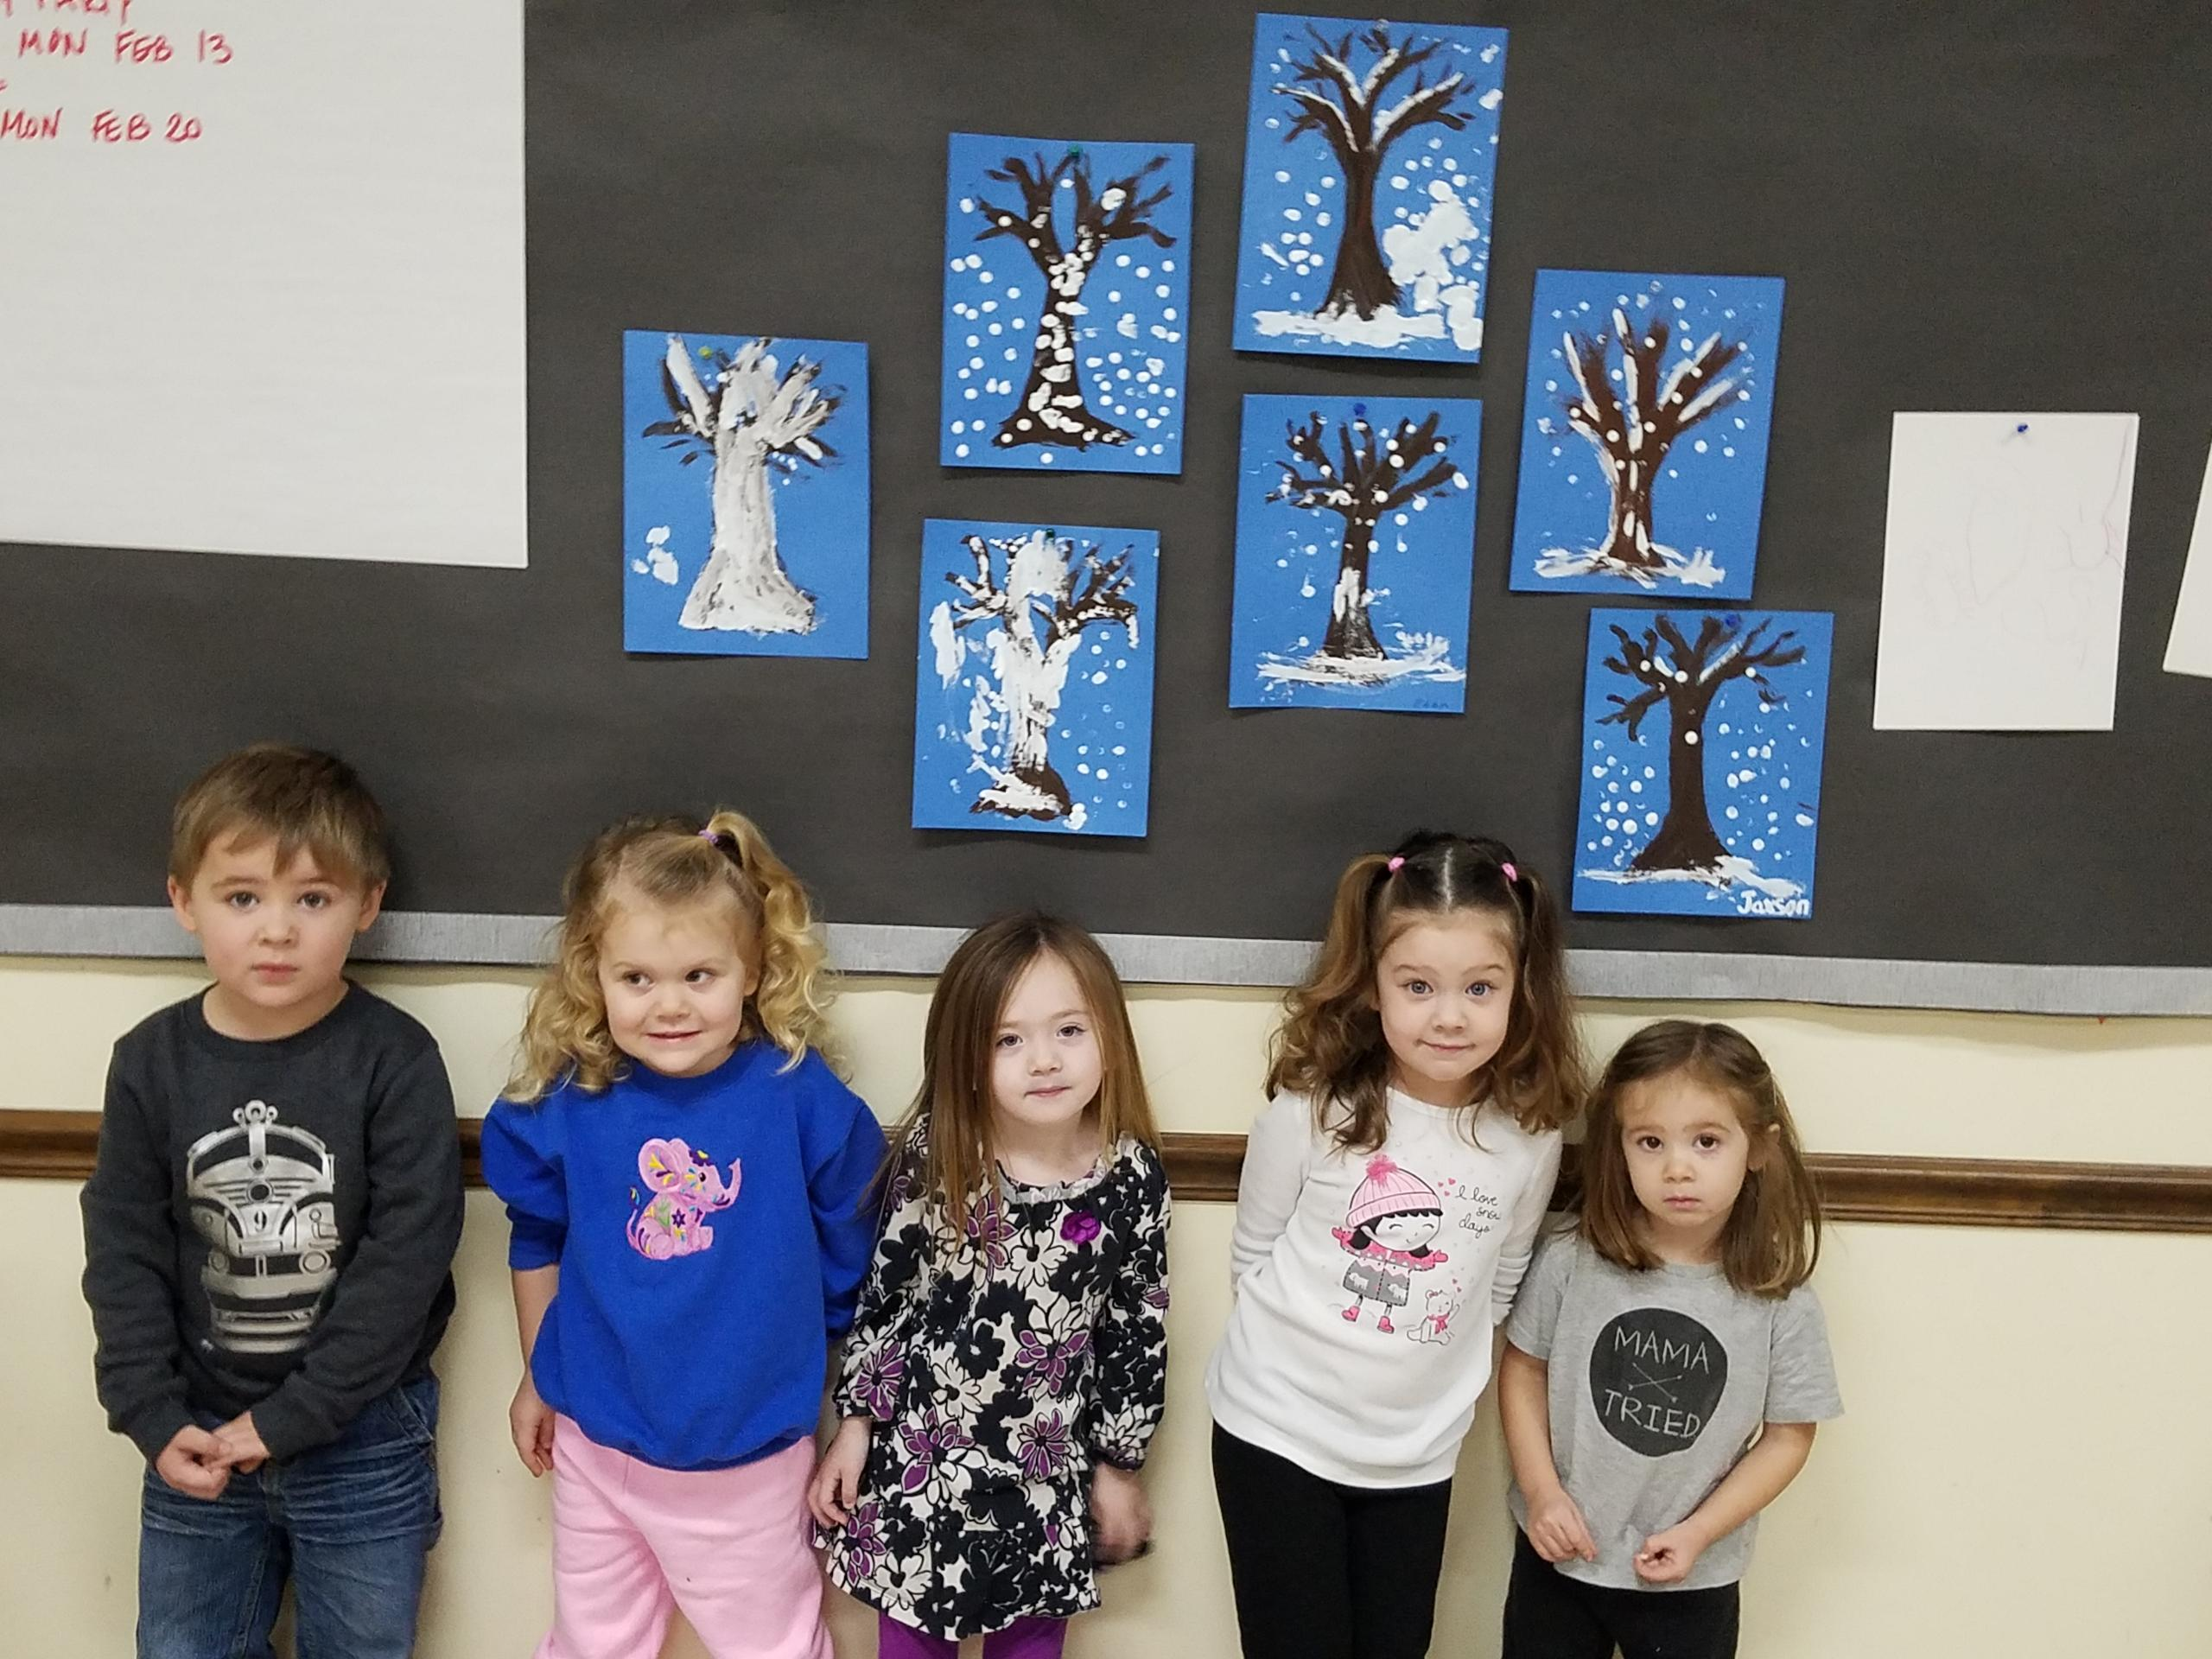 Displaying their latest creation from Story Time are (l-r) Jaxson, Hannah, Sophia, Emily, and Eden.  Evan was not present for photo.